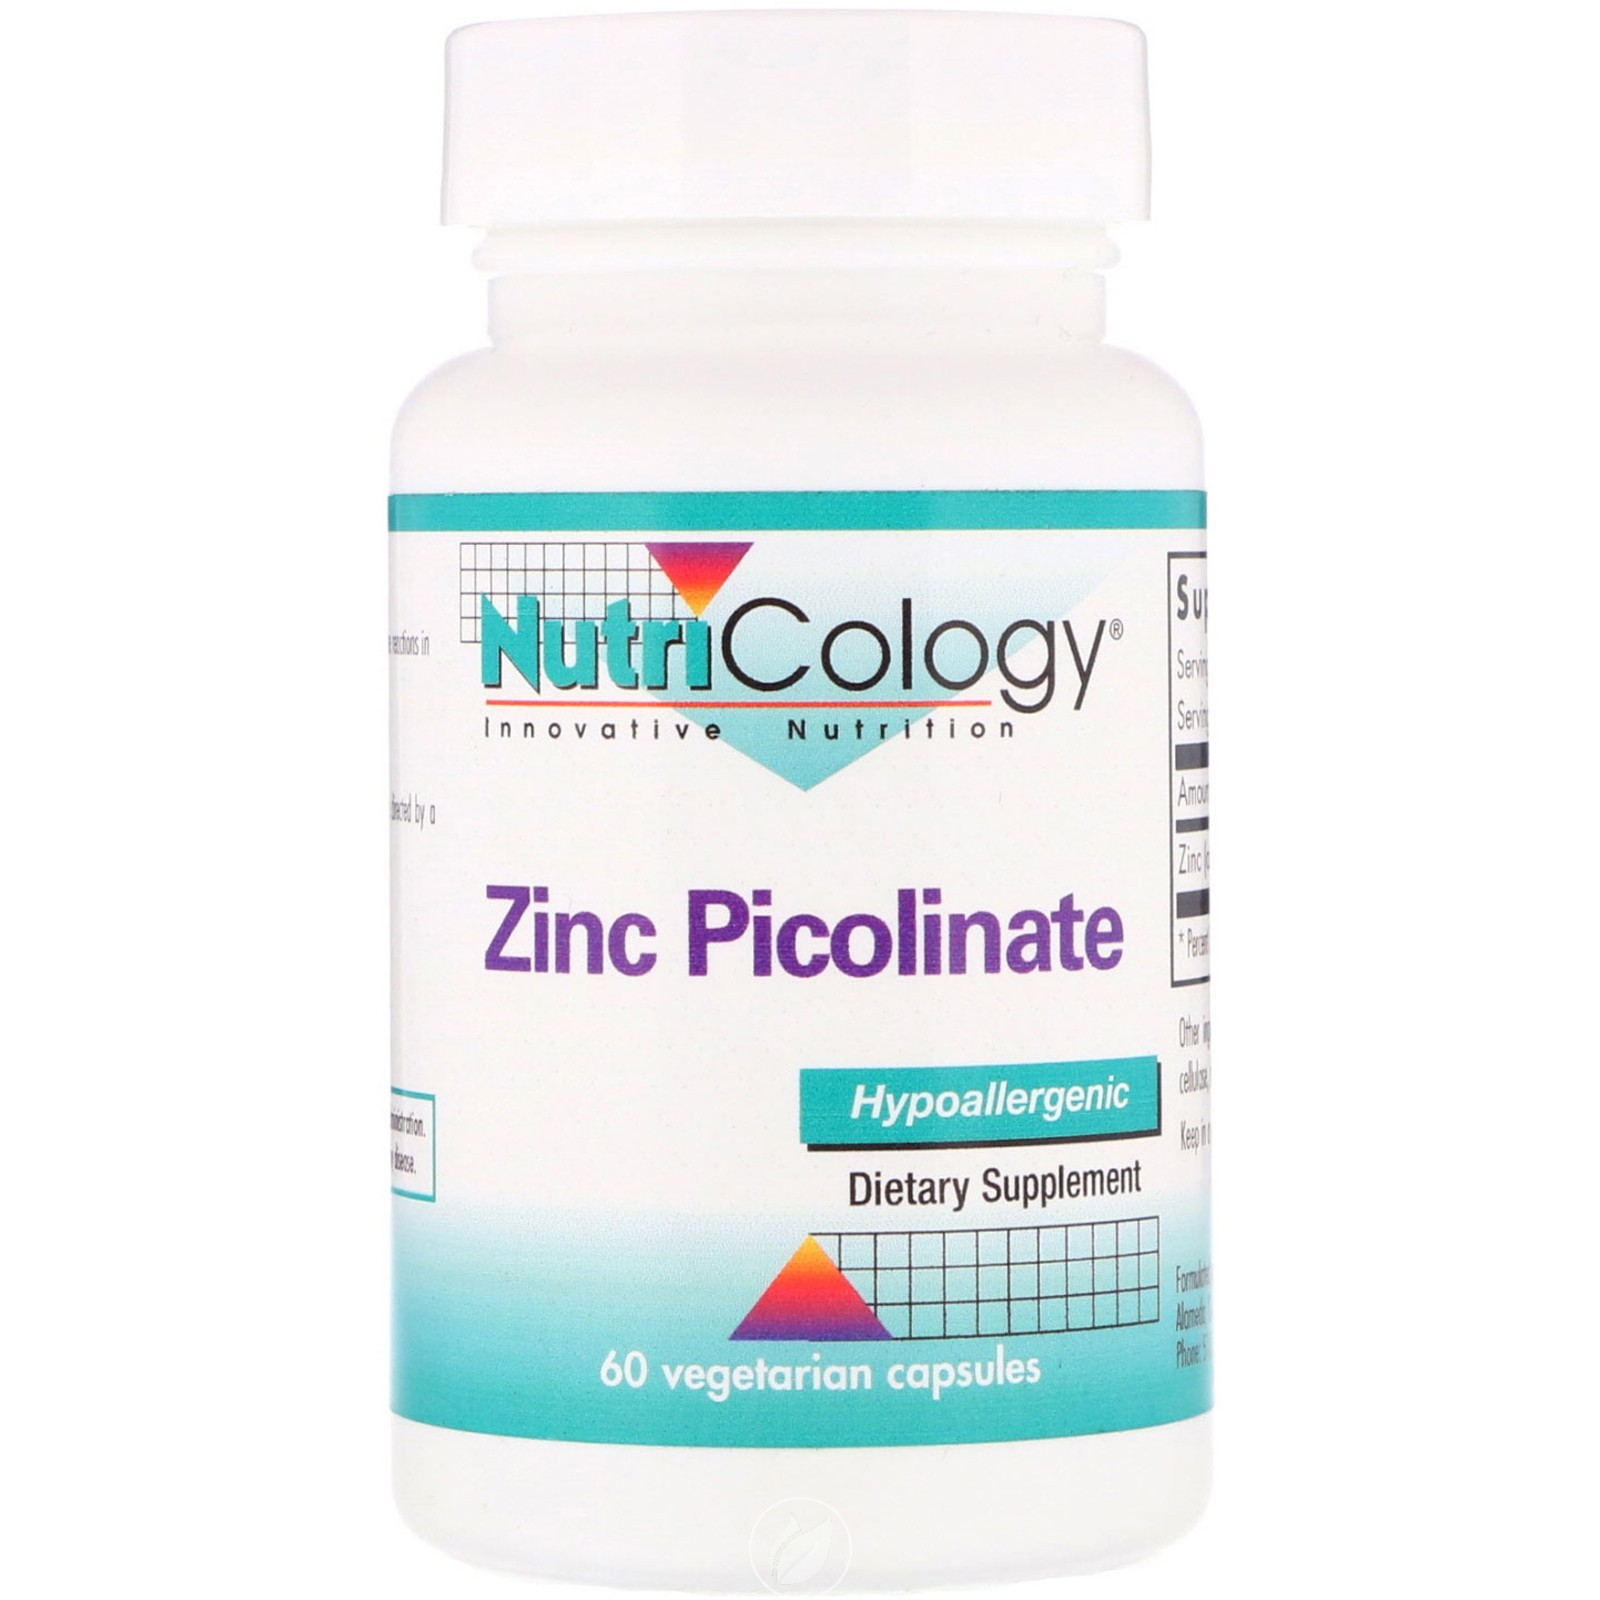 Nutricology Zinc Picolinate 60 Capsule, Pack of 2